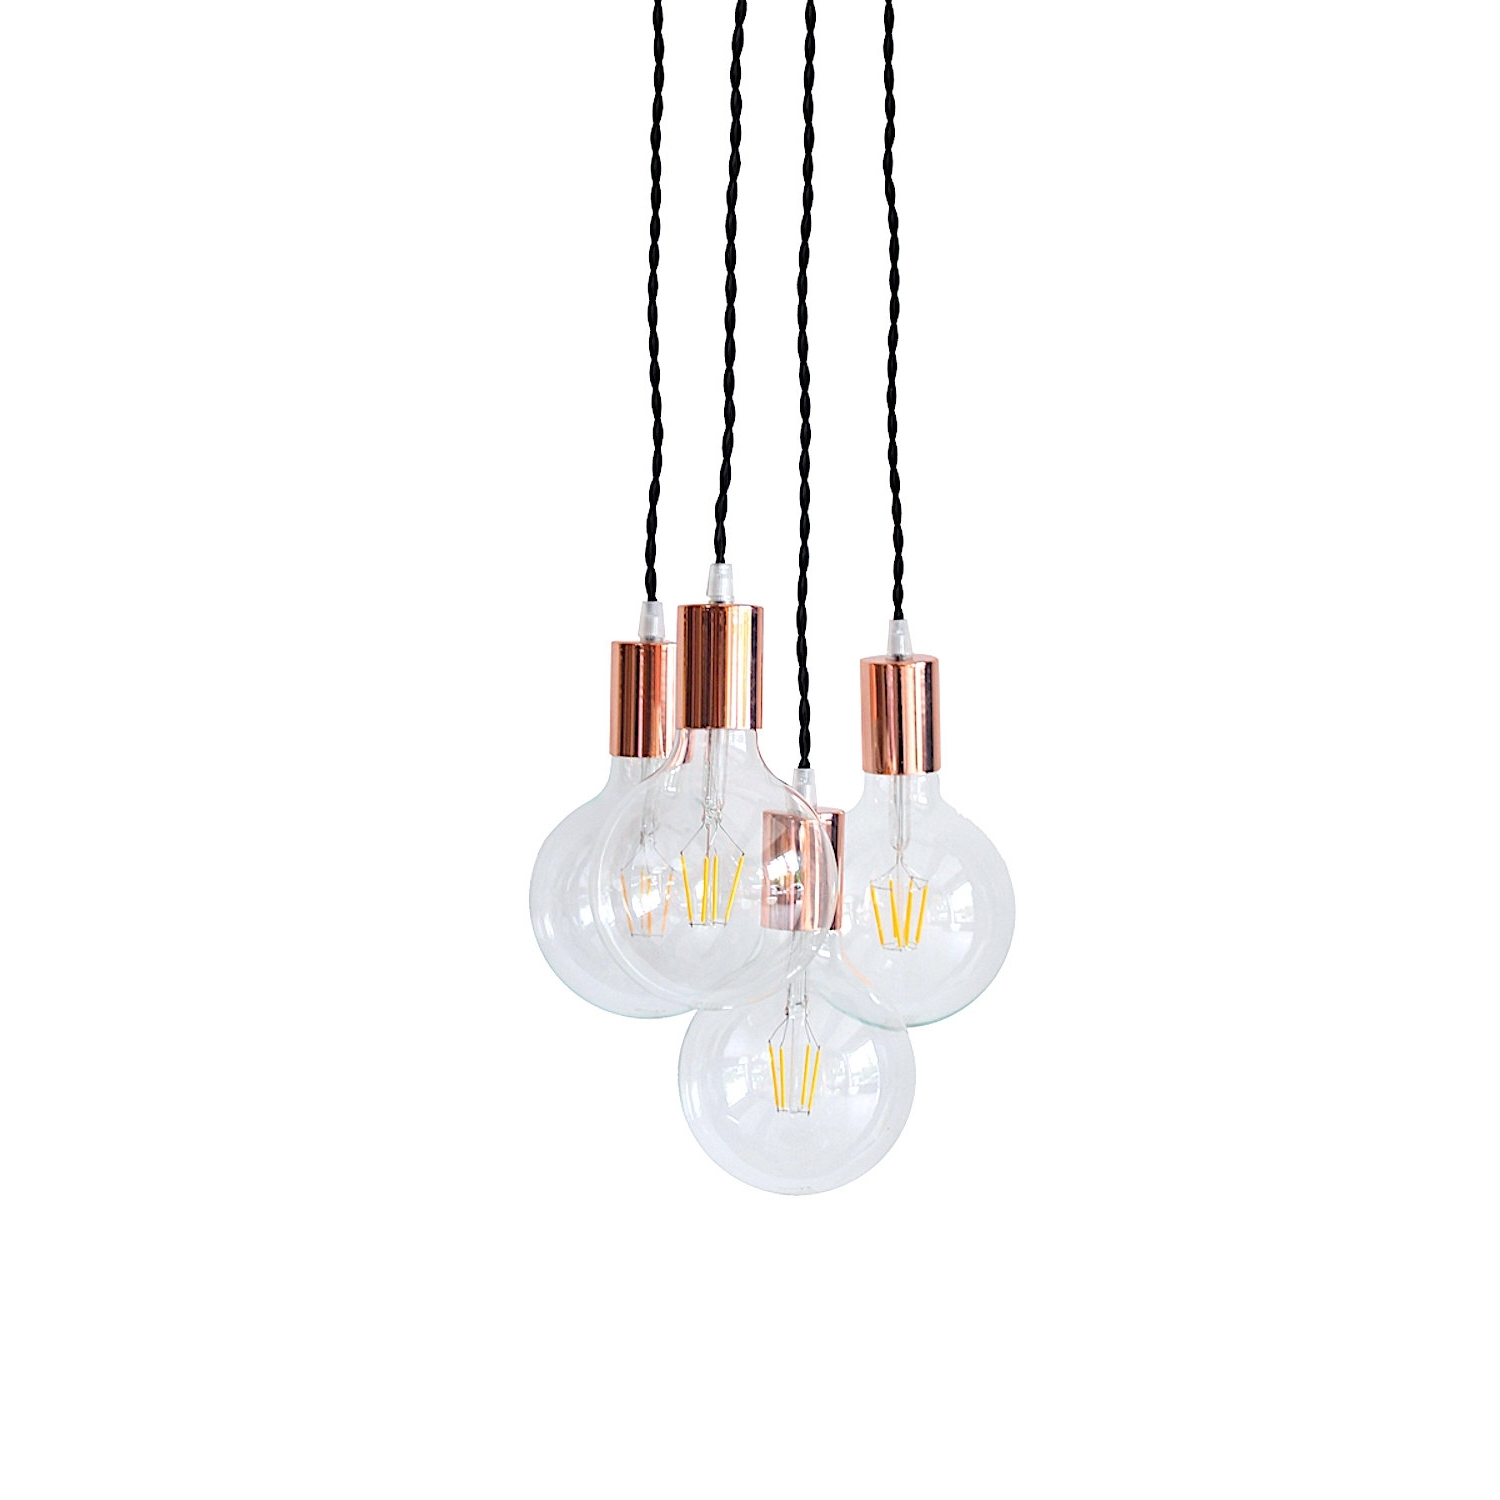 Copper Chandelier Light Cluster Rose Gold Pendant Lighting Swag In Preferred Gold Modern Chandelier (View 11 of 20)